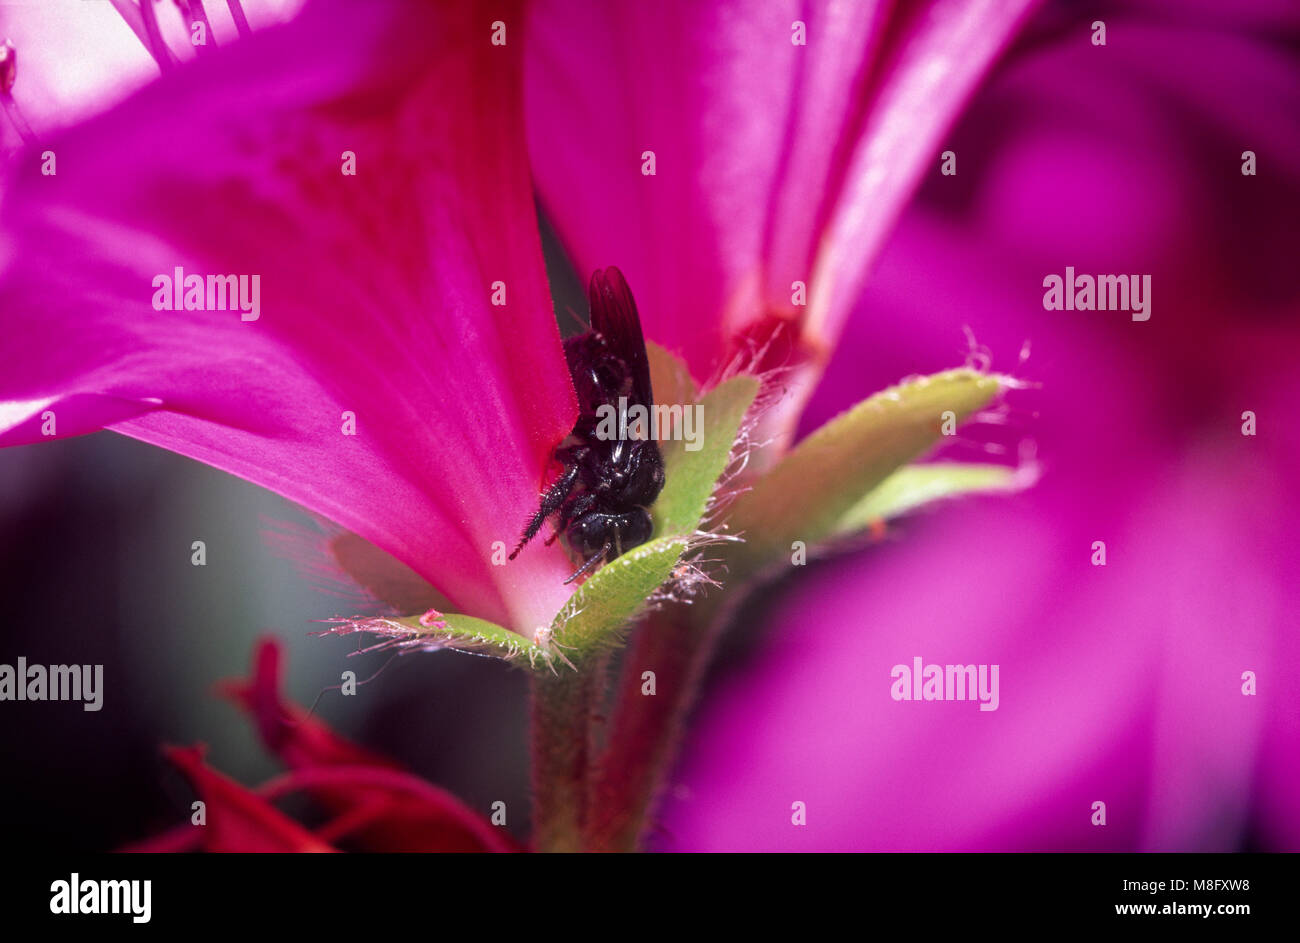 Black robber bee feeding on nectar from back of flower without pollinating flower Stock Photo